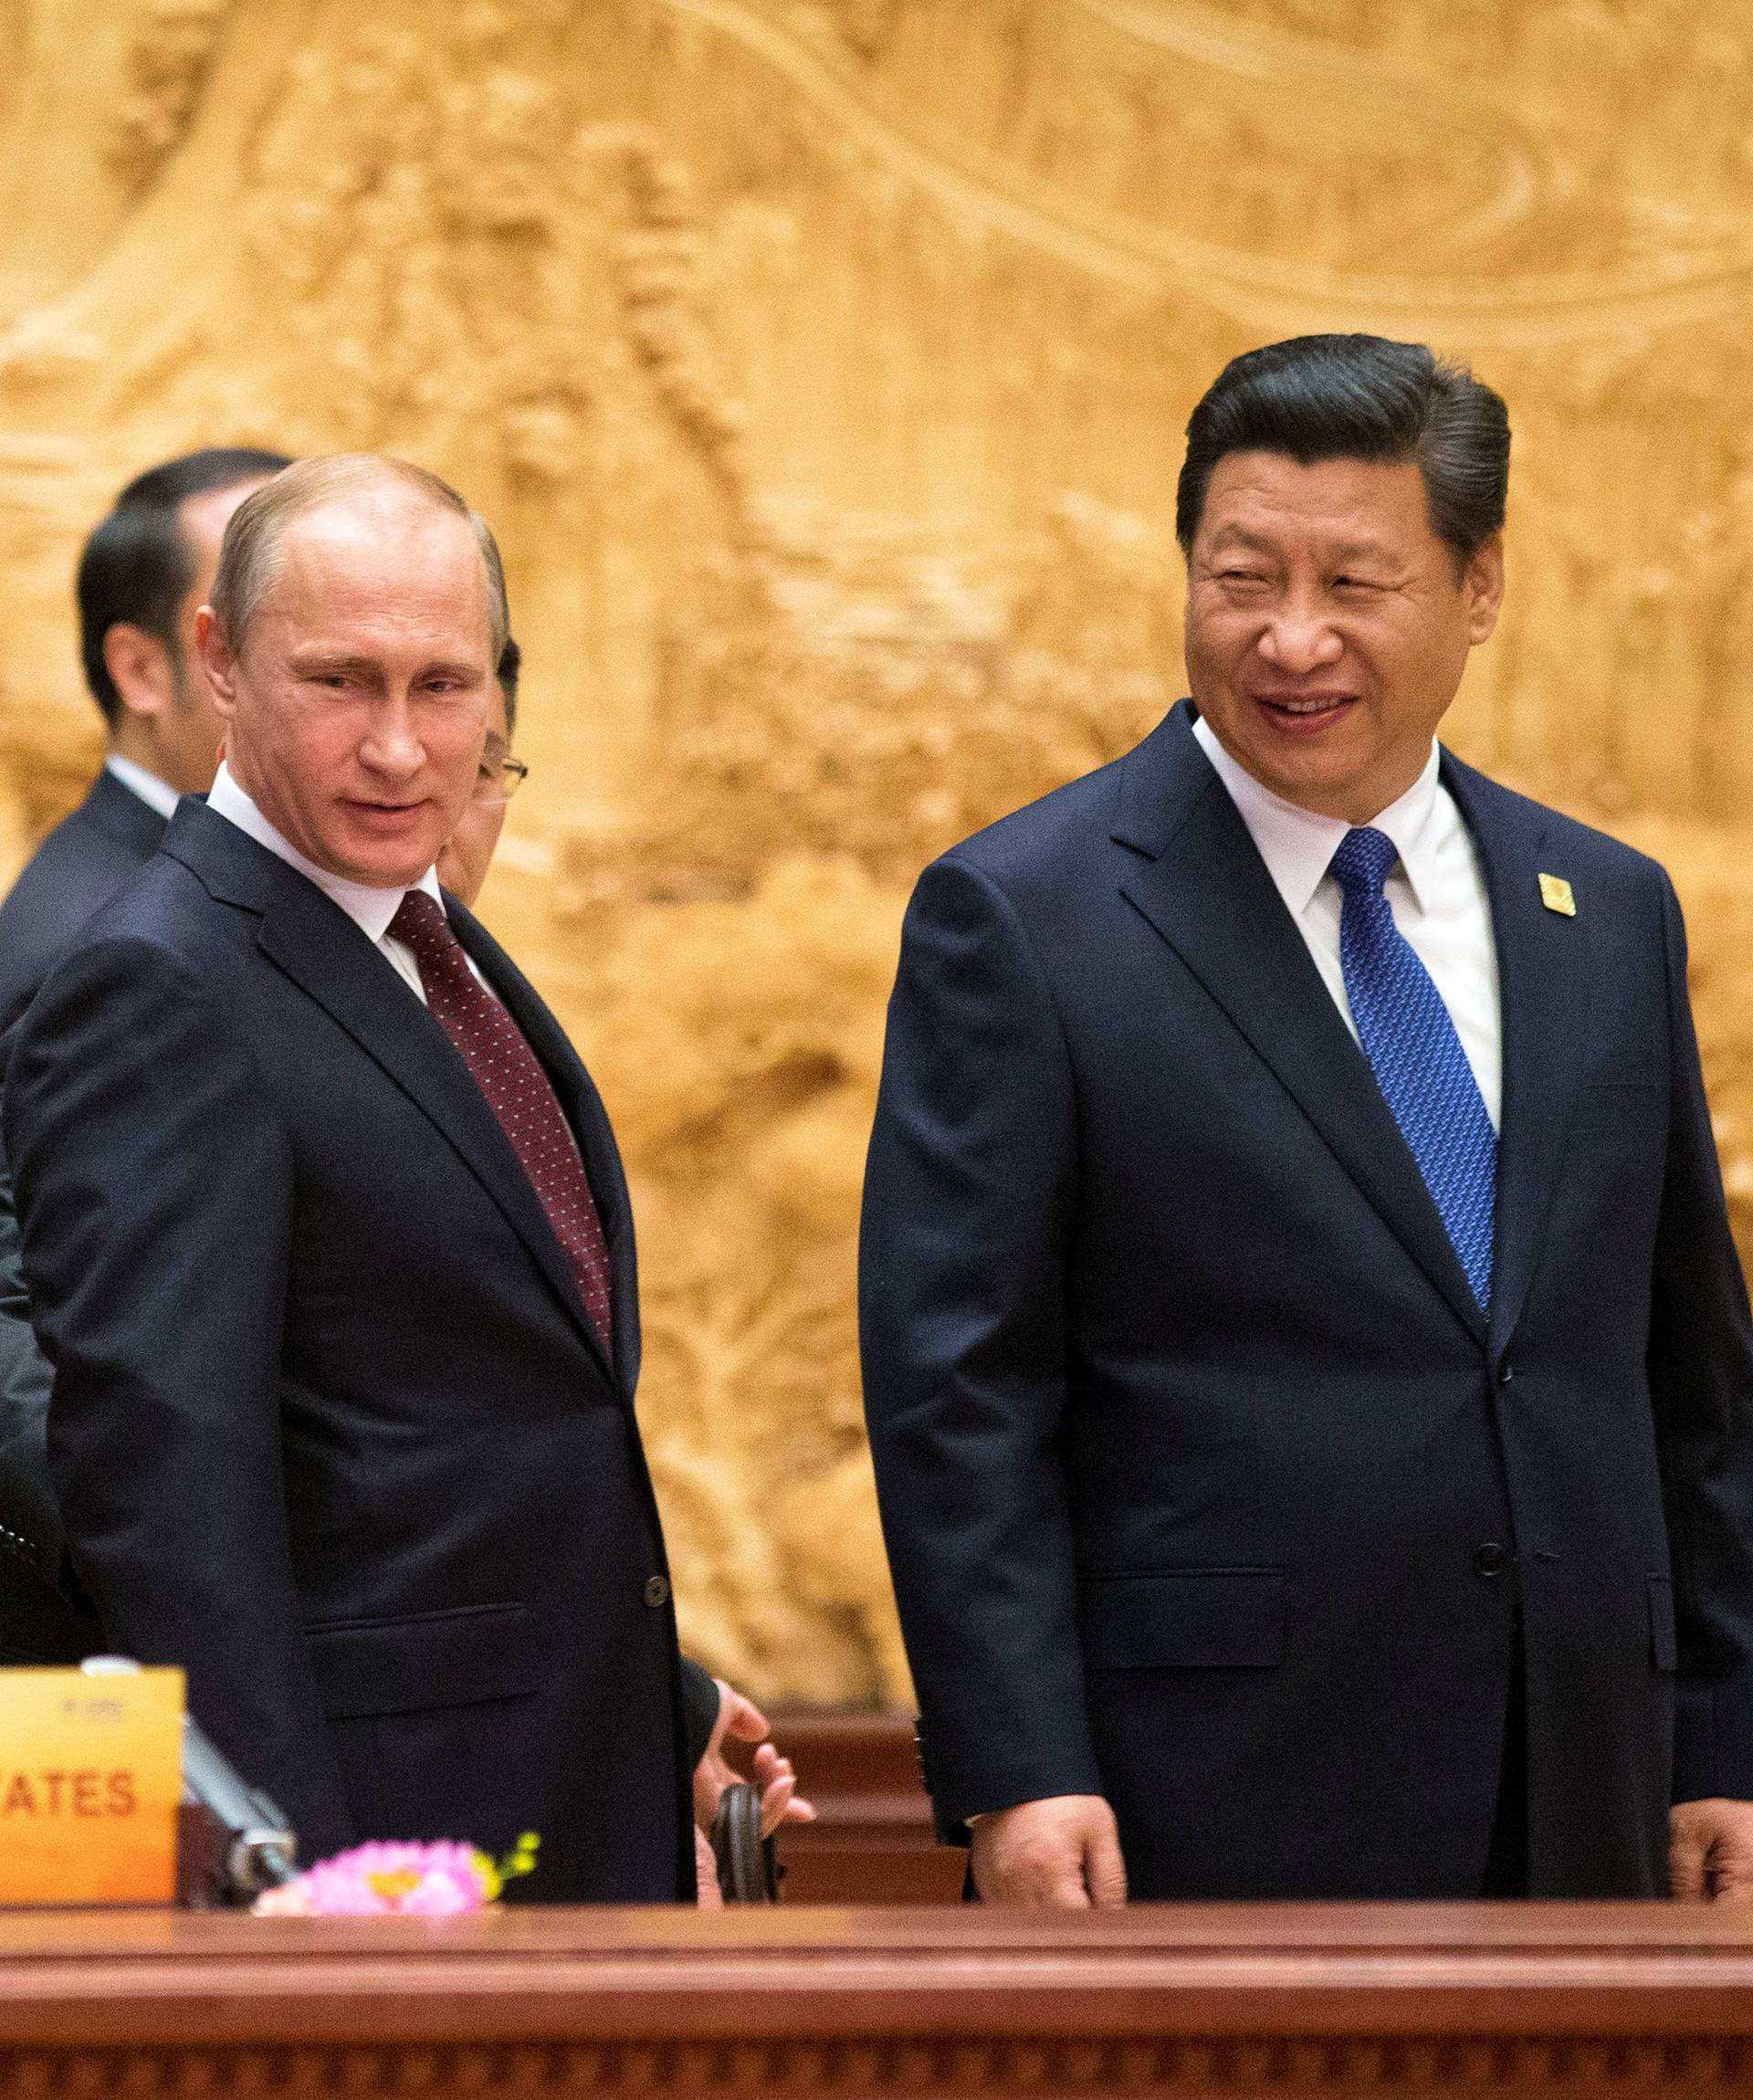 U.S. President Obama, arrives with Chinese and Russian counterparts, Xi and Putin, at the the APEC Summit plenary session in Beijing